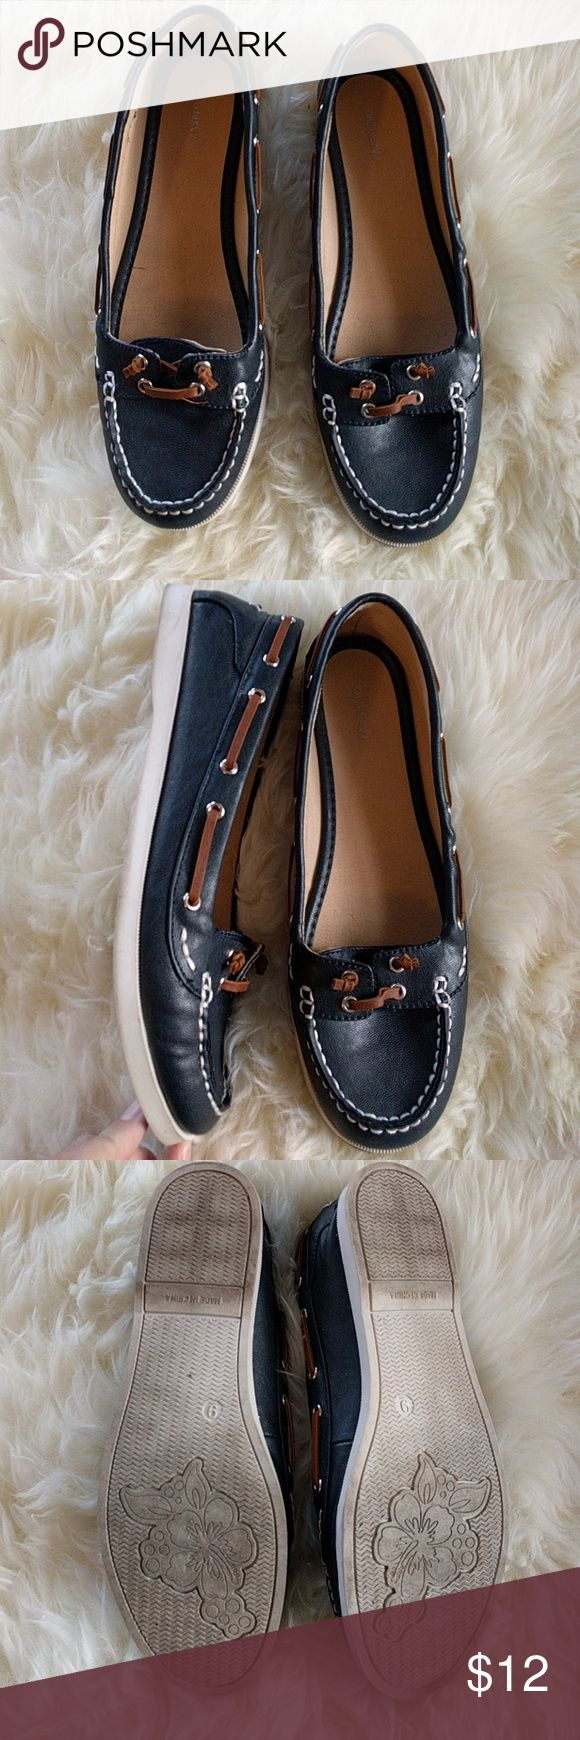 Old Navy navy boat shoes like Sperry's size 9 Old Navy boat shoes like Sperry's in navy, white soles, size 9 Old Navy Shoes Flats & Loafers